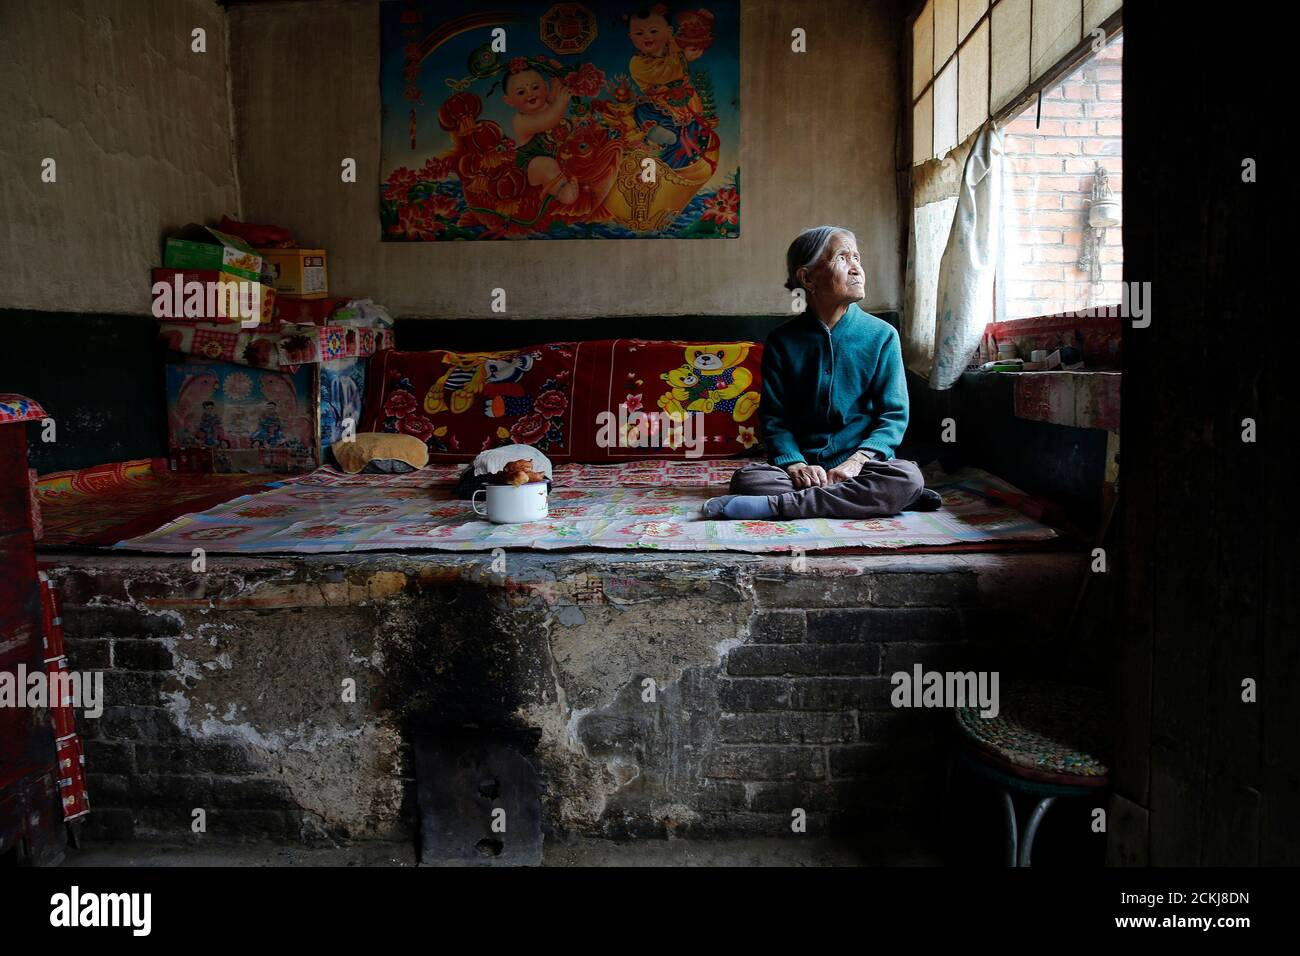 """Chinese former """"comfort woman"""" Zhang Xiantu rests on a traditional brick bed in her house in Xiyan Town, Shanxi Province, China, July 18, 2015. """"Comfort women"""" is the Japanese euphemism for women who were forced into prostitution and sexually abused at Japanese military brothels before and during World War Two. Xiantu is the only surviving """"comfort woman"""" of the 16 plaintiffs in Shanxi who sued the Japanese government in 1995 for abducting girls and using them as """"comfort women"""" during World War Two. According to information from China's Commission of Inquiry into the Facts of Comfort Women be Stock Photo"""